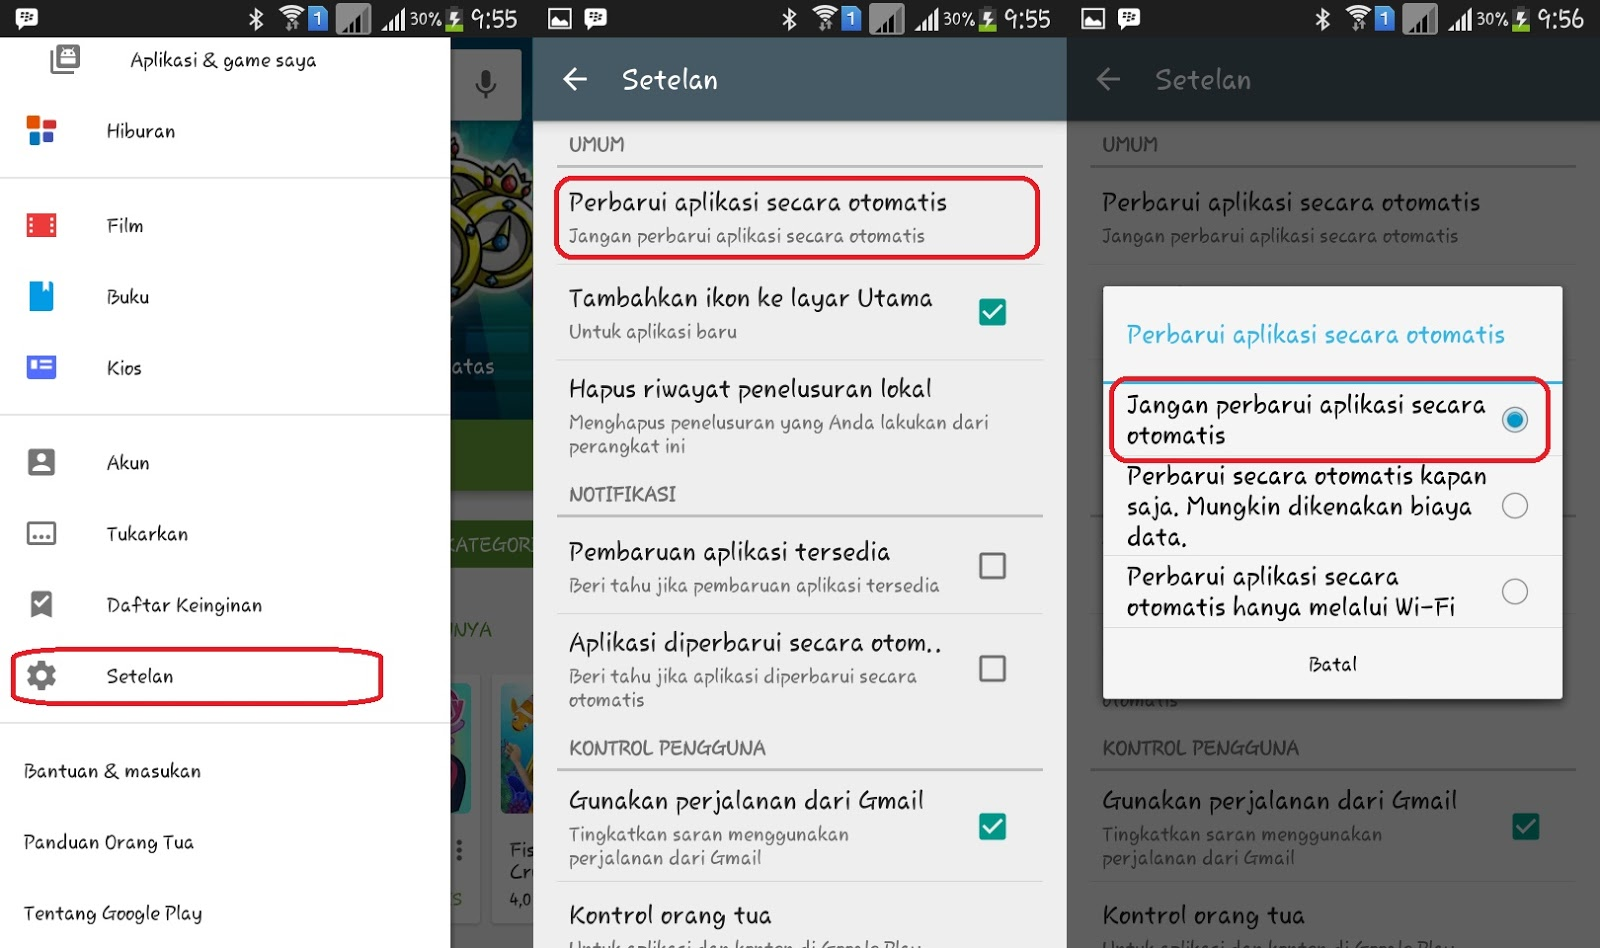 Cara Update App Android - Cara Agar Google Play Store Tidak Melakukan Update Aplikasi Secara Otomatis - Connect with anyone on android based phones and tablets, other mobile devices, windows, mac, zoom rooms, h.323/sip room systems, and telephones.